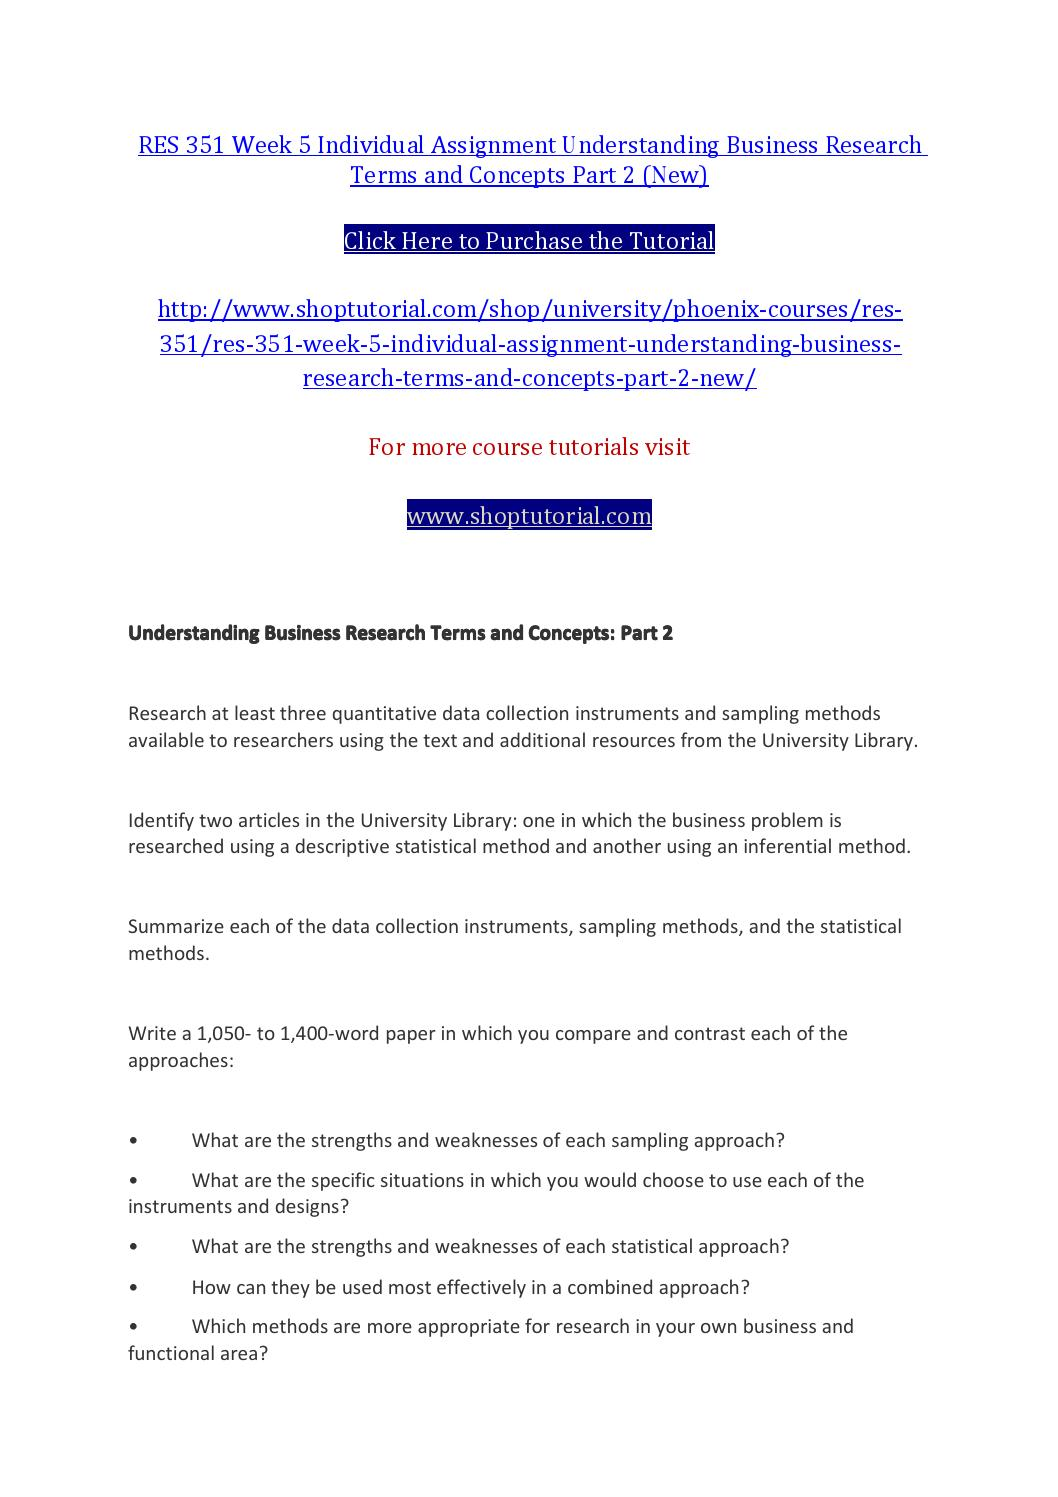 understanding business research terms and concepts part 3 Res 351 week 3 individual assignment understanding business research terms and concepts  assignment understanding business research terms and concepts part 3.